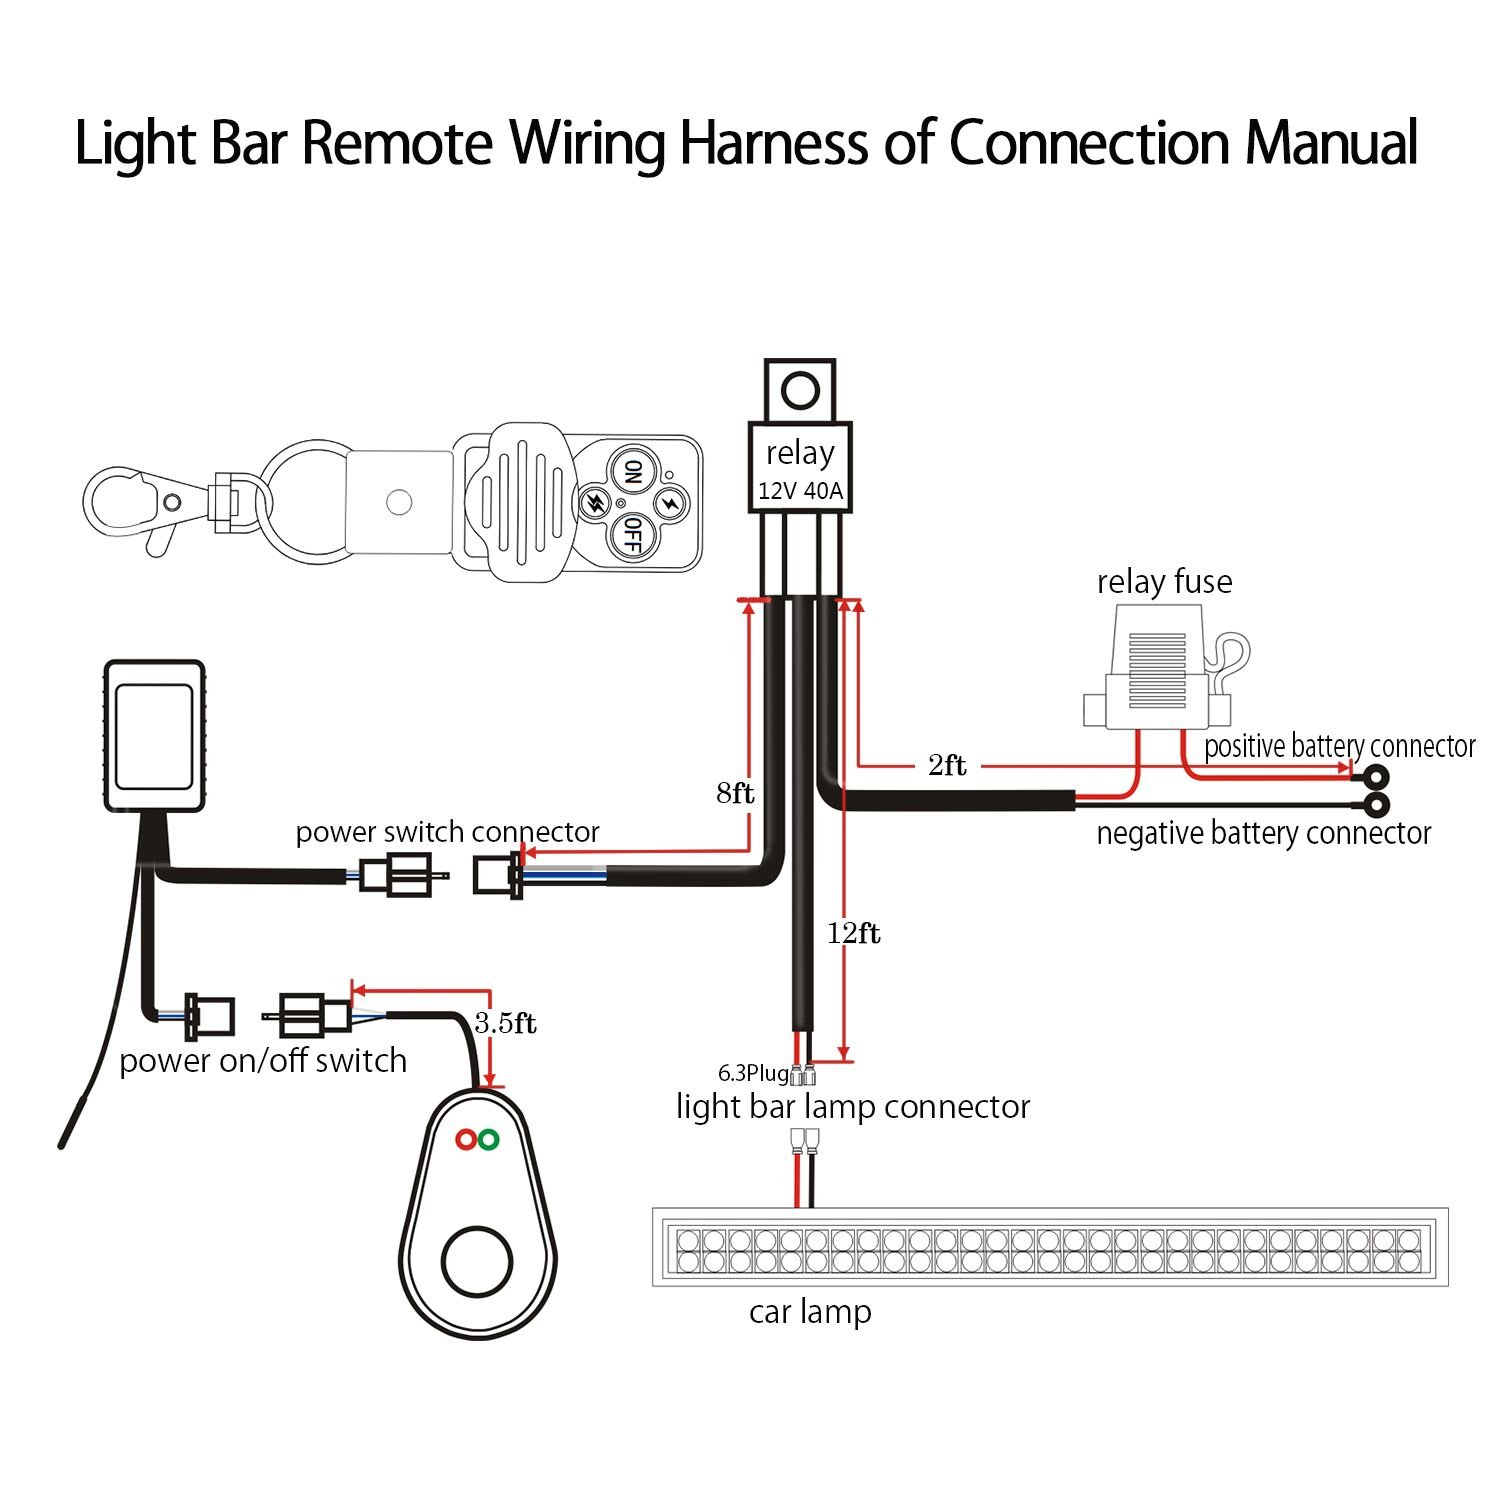 Jhe Led Light Bar Remote Wiring Harness Kit With 1929 Dodge Diagram Control Switch 12v 40a Relay On Off Wired 14awg Support 300w